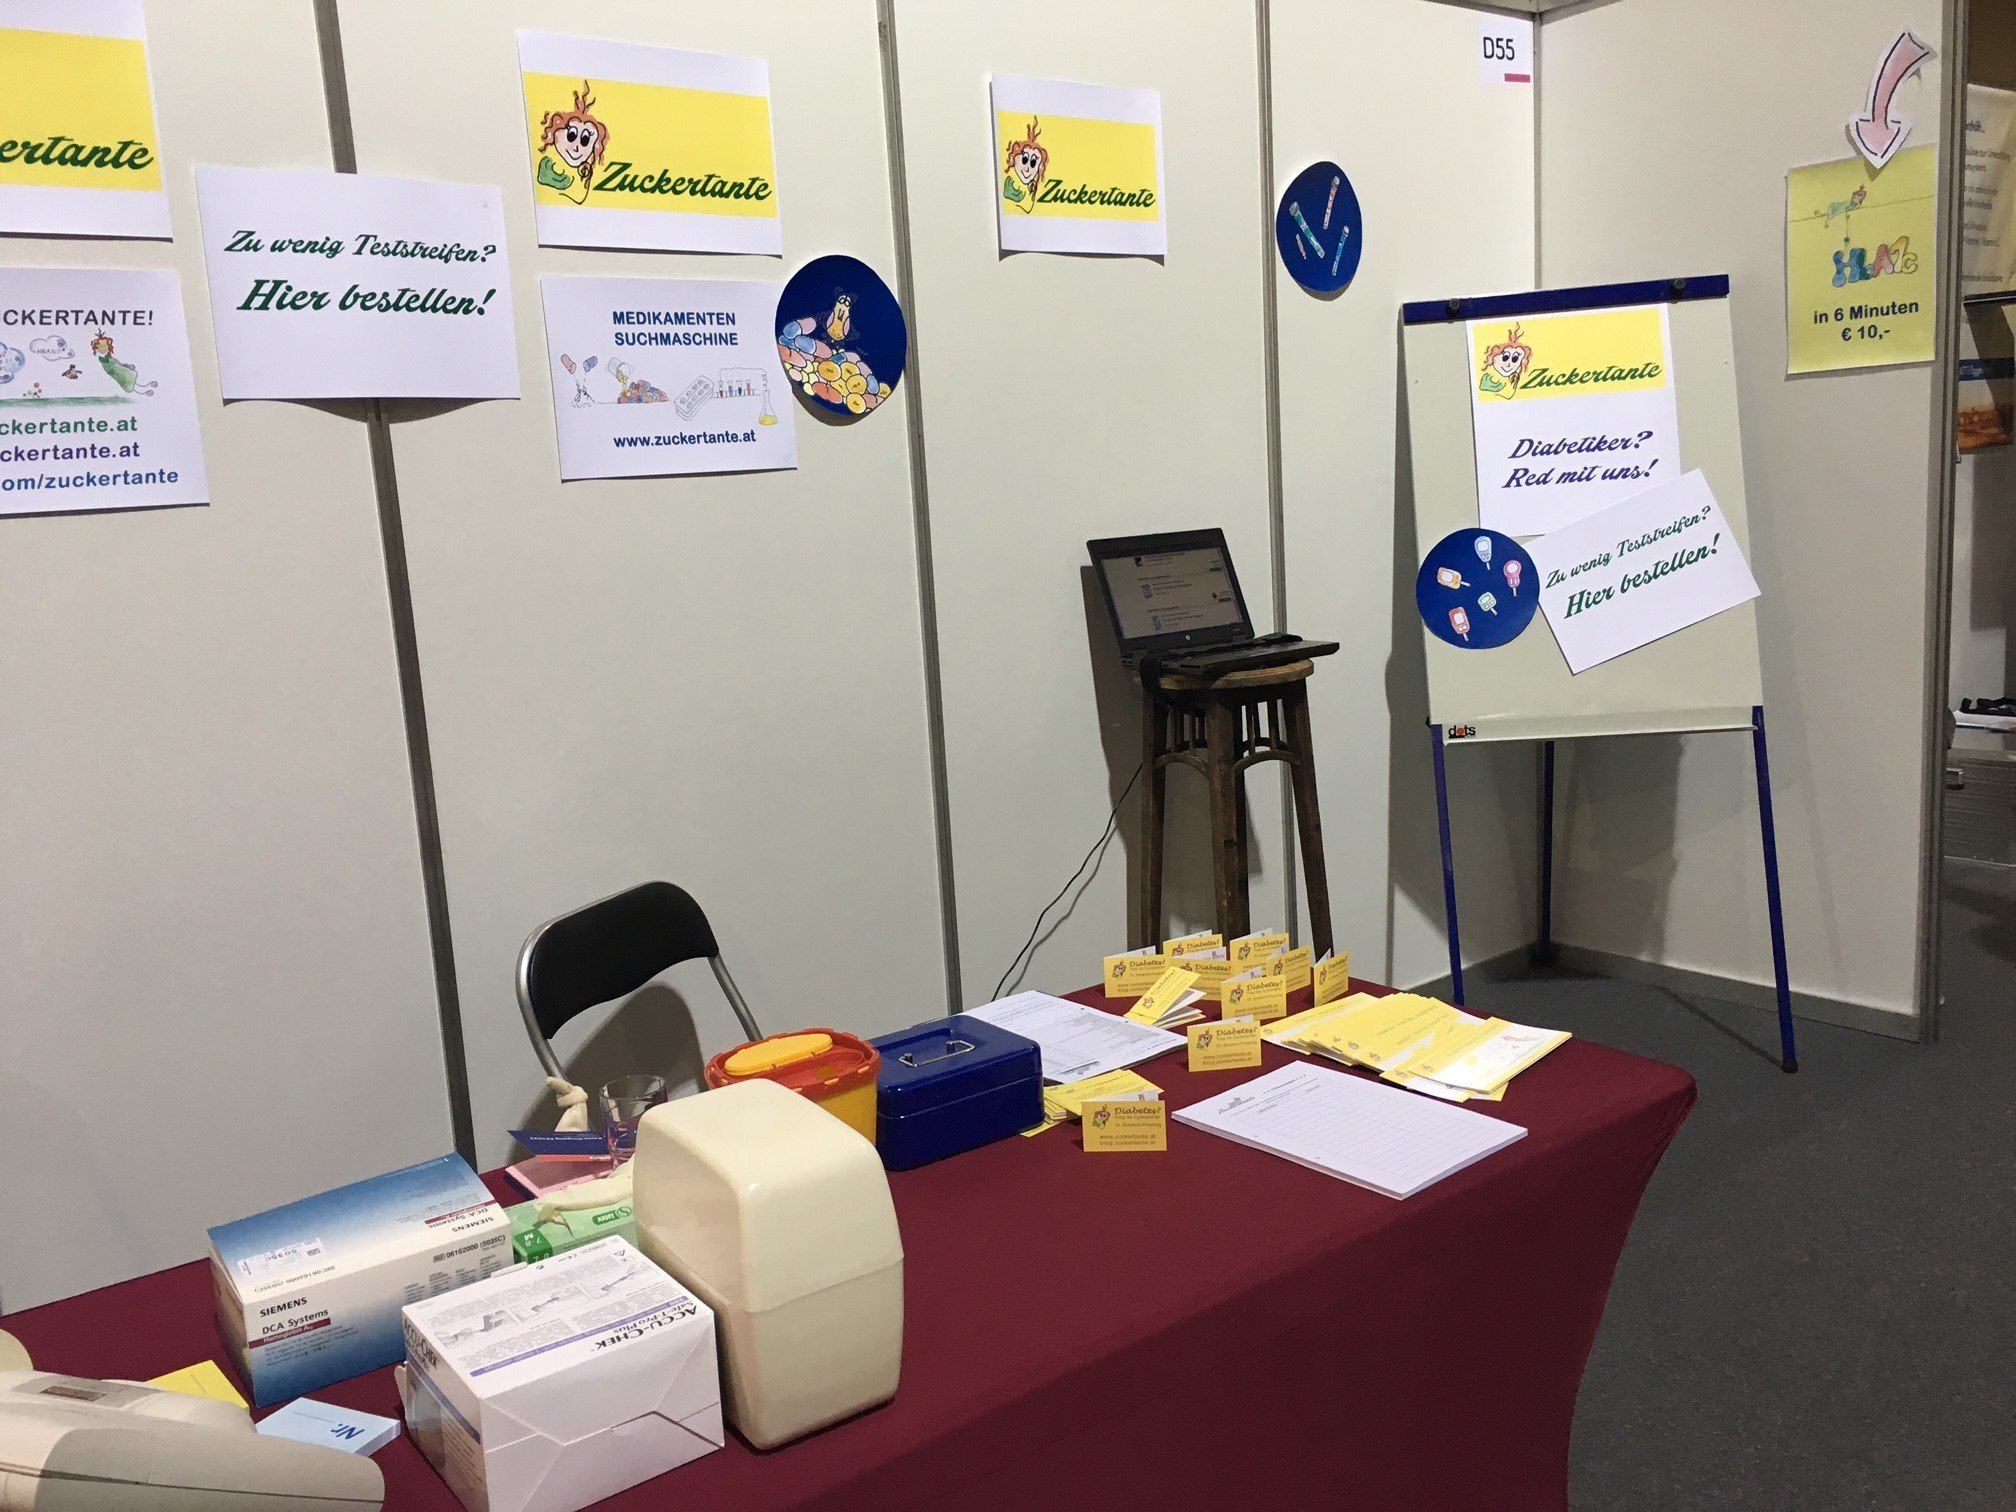 Messestand fertig